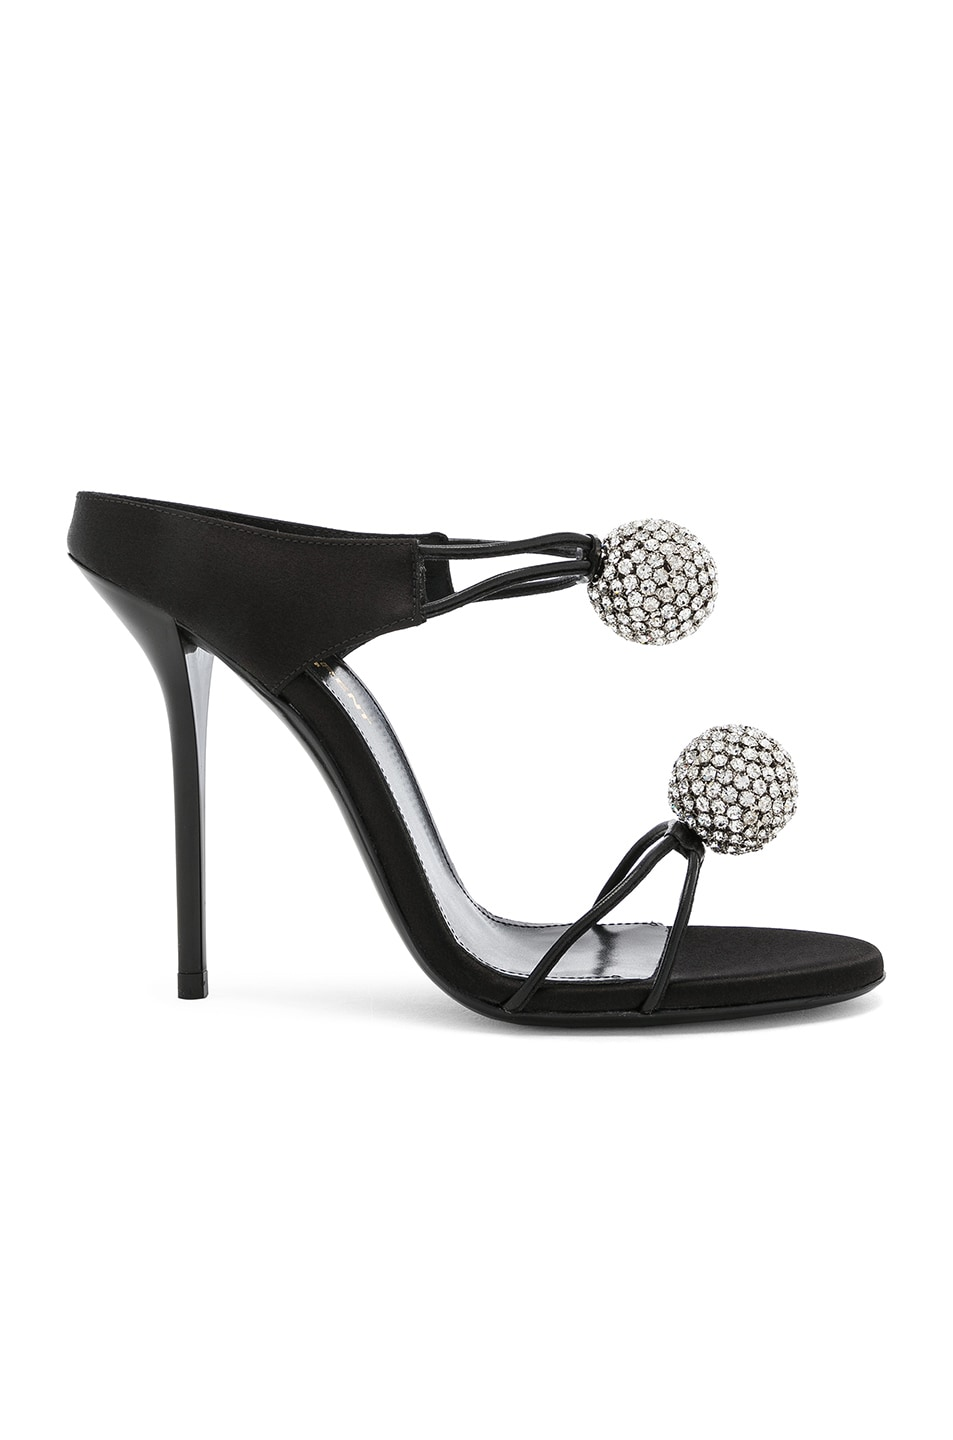 SAINT LAURENT Sandals Satin Pom Pom Strap Pierre Sandals